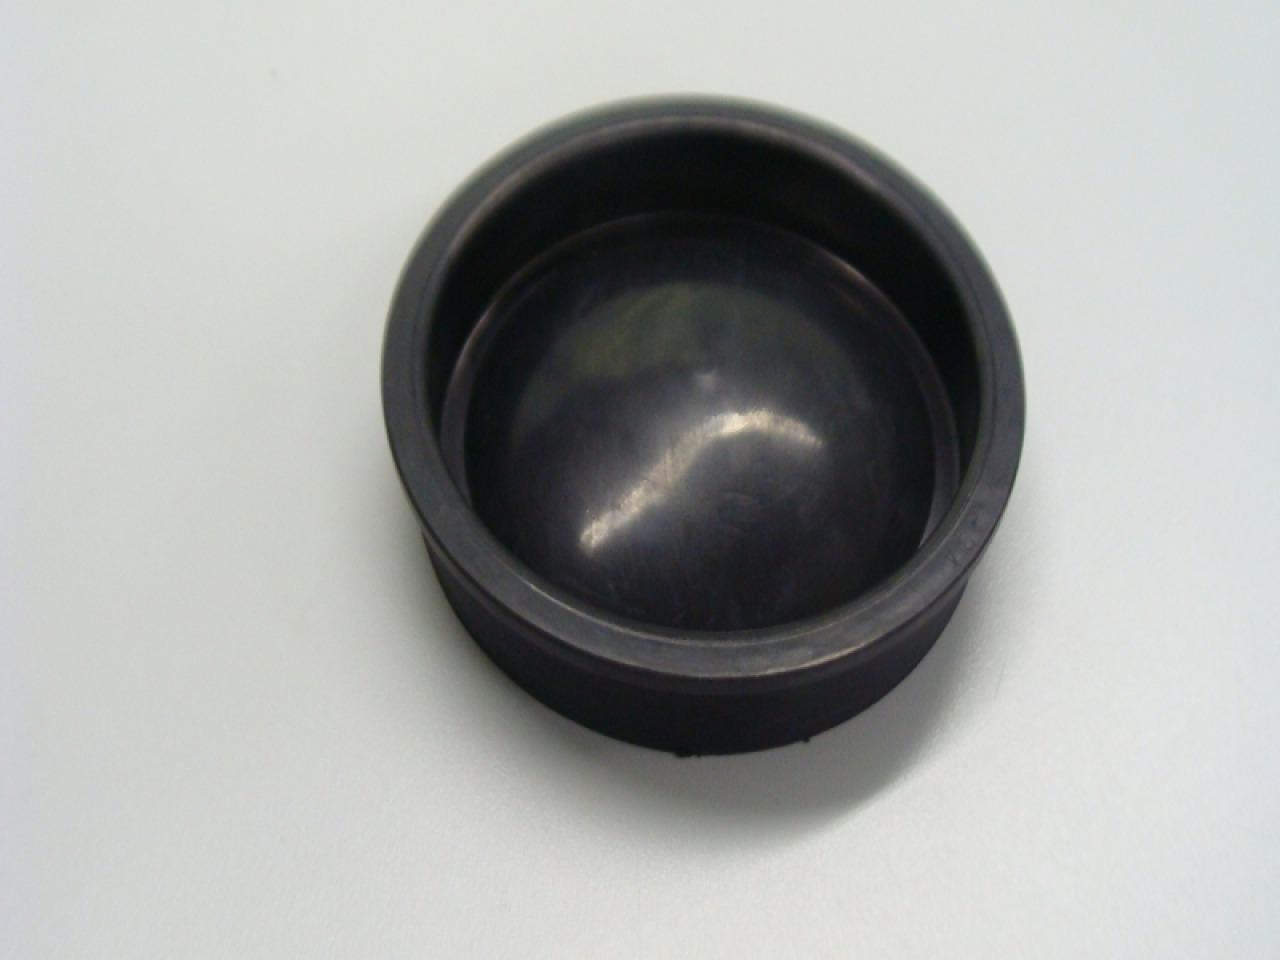 TAMPAO CEGO 100 MM